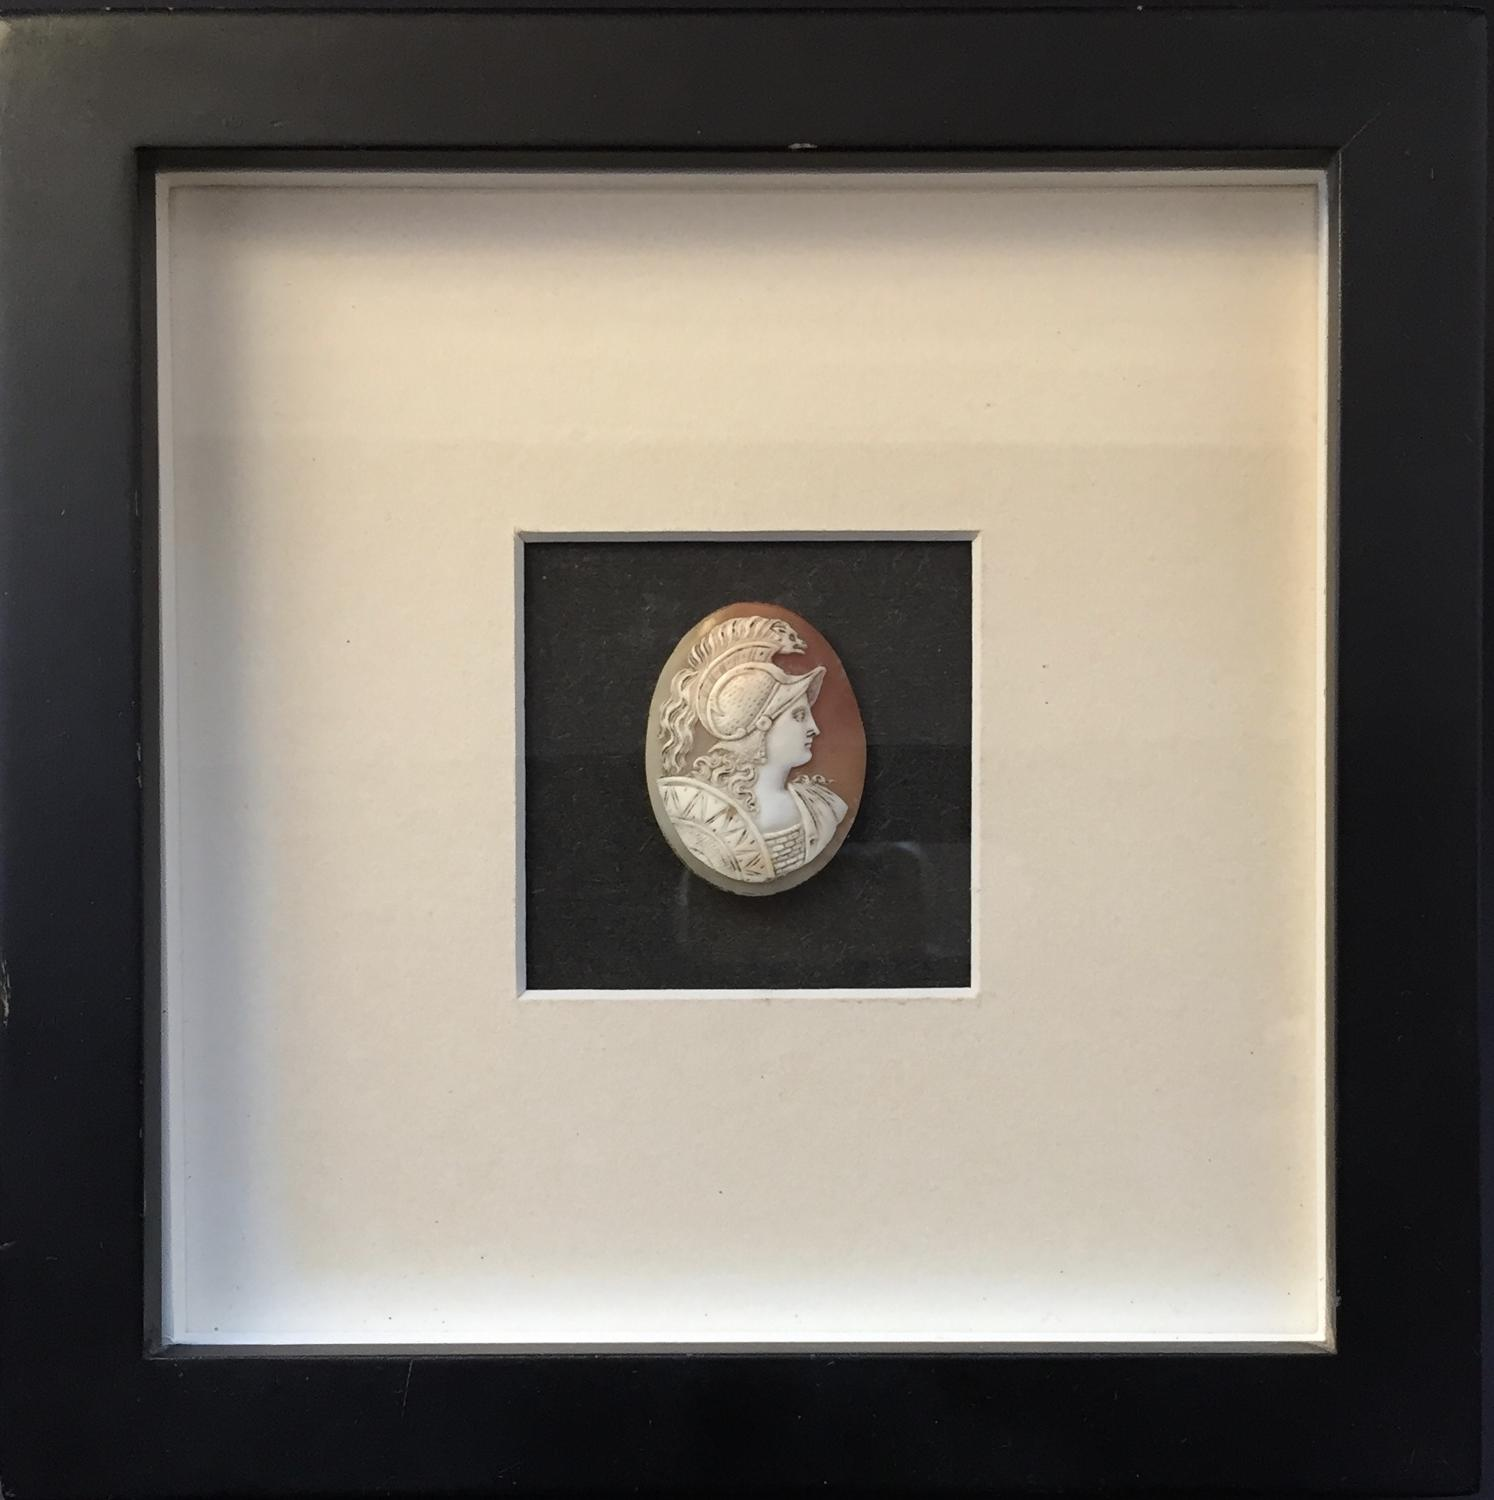 Carved Shell Cameo of Minerva in a shadow box frame